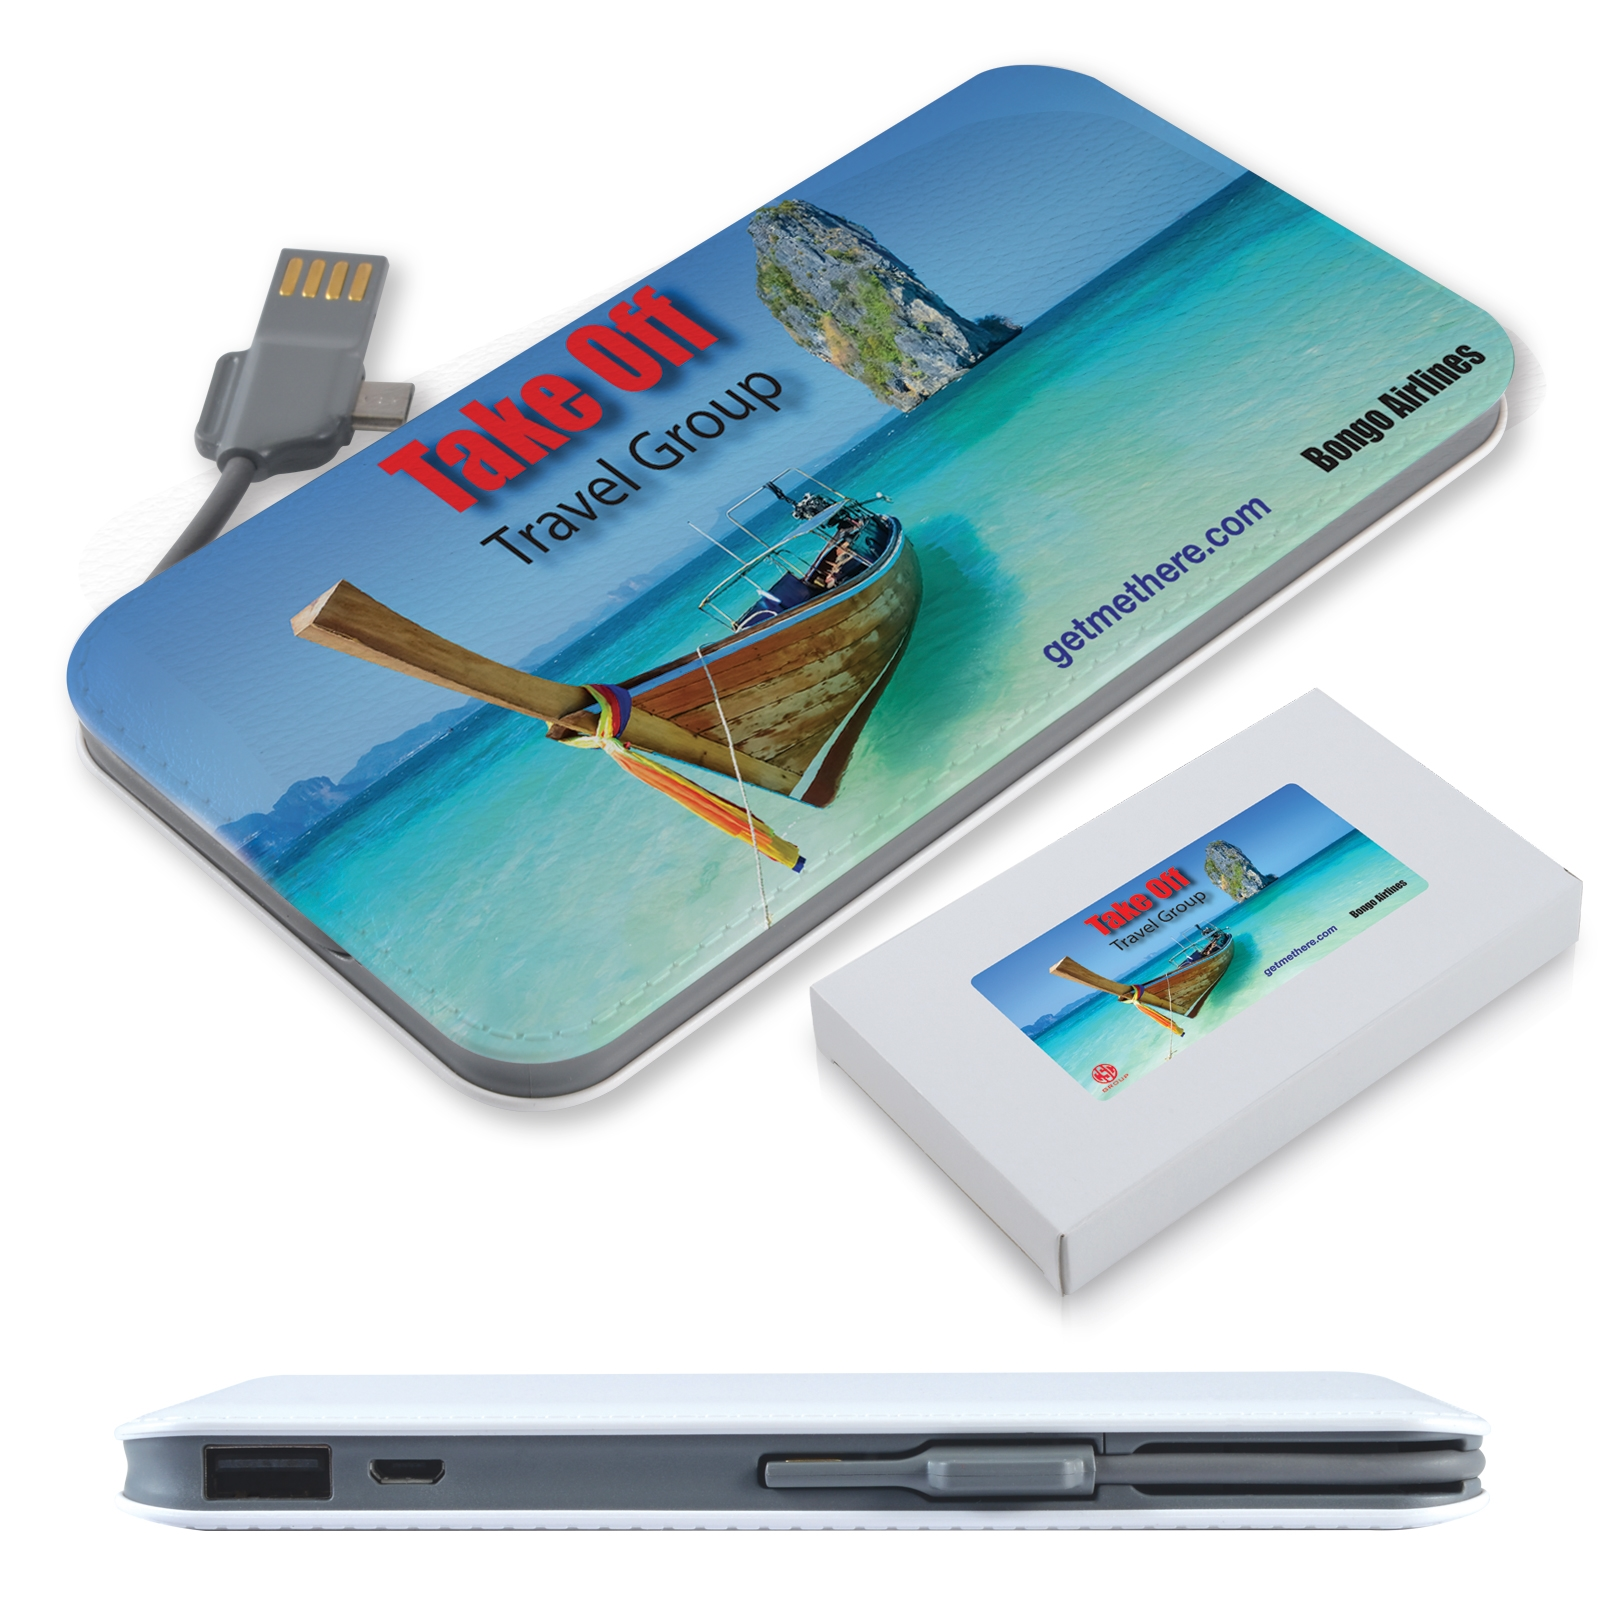 Surge Power Bank - Includes a 1 colour printed logo